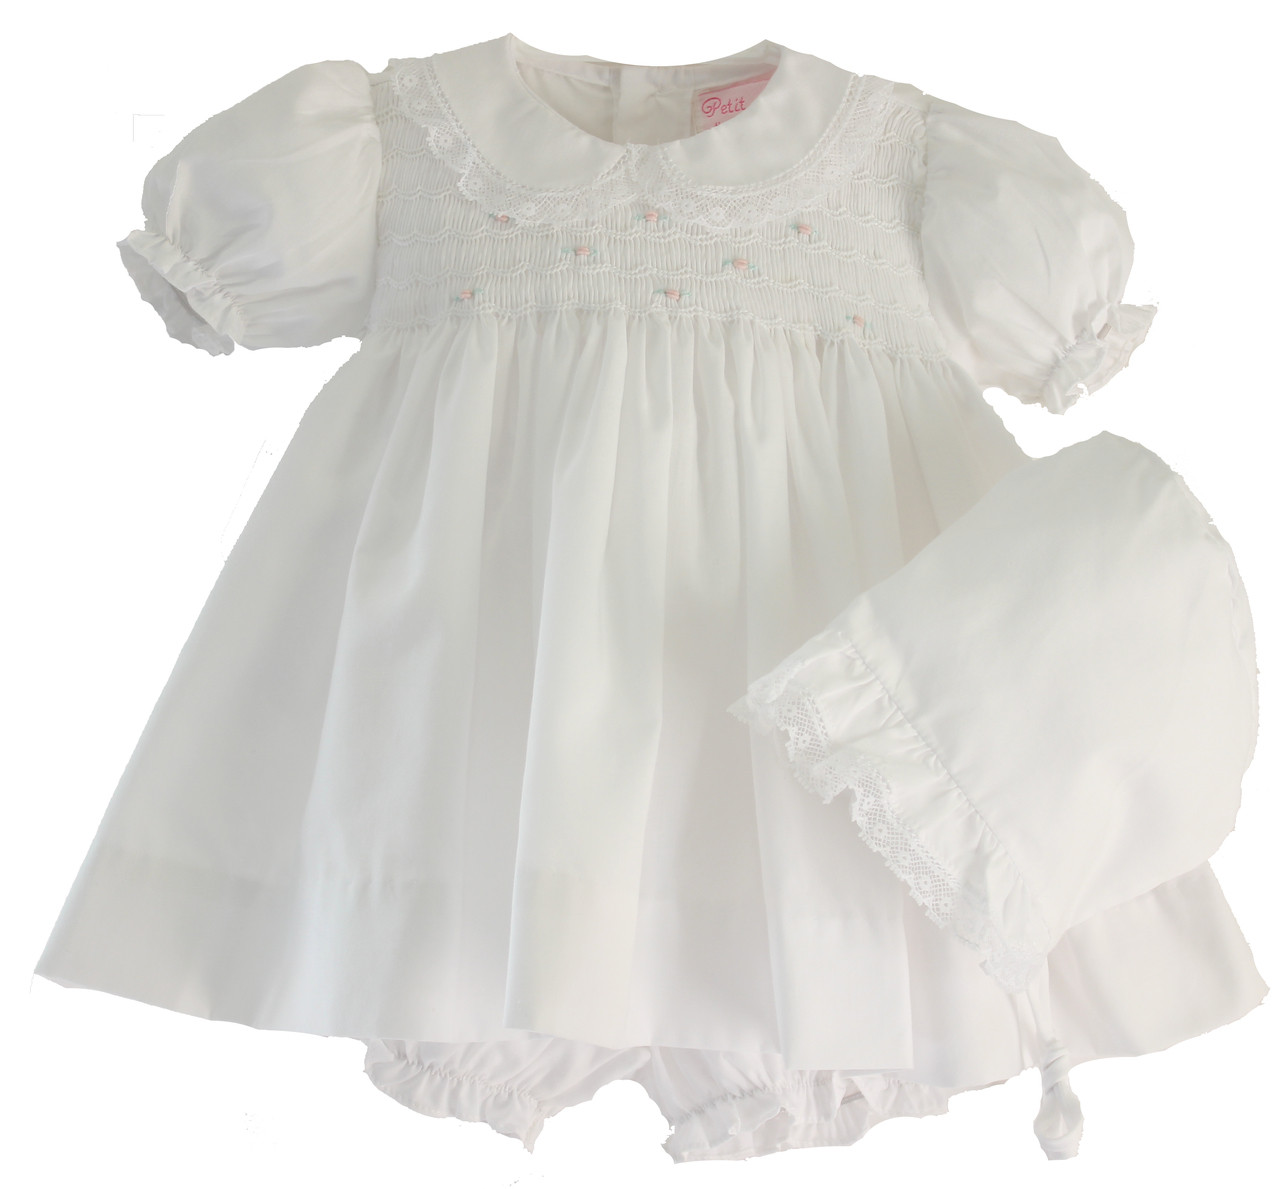 aeb96c5d1 ... White Newborn Baby Girls Dress & Bonnet with Lace. Loading zoom